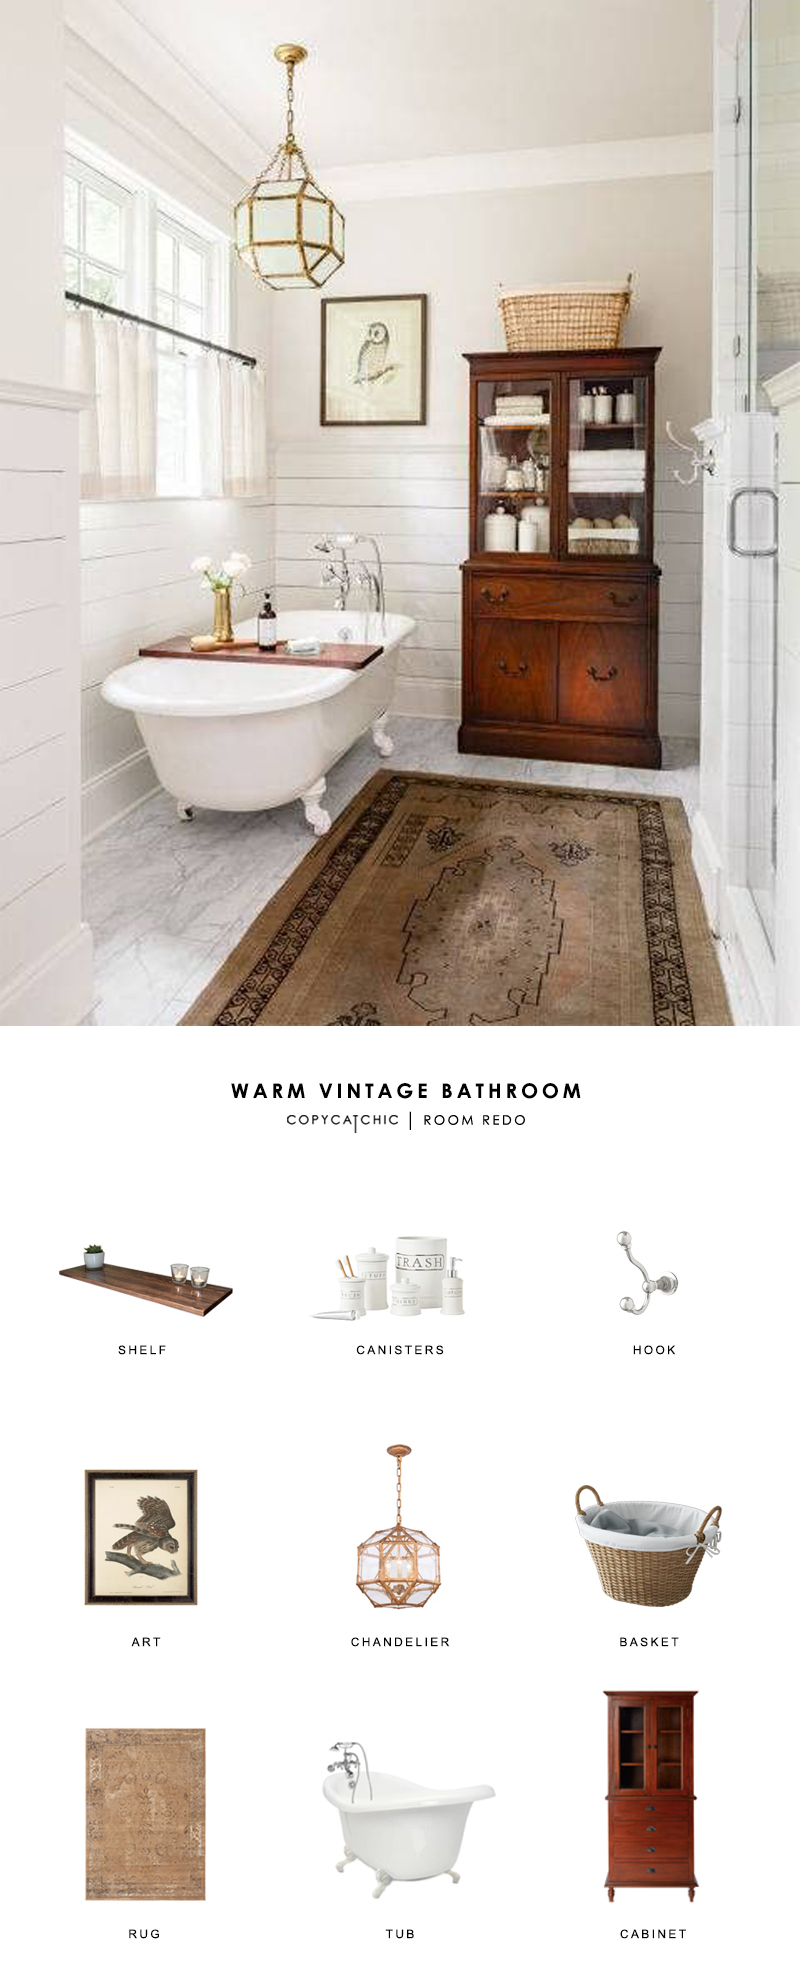 caddy reclaimed panel beside bathtub astonishing bathroom rectangle antique vintage step sink get wall ideas how bathrooms bath wooden to and mirror an on by for decor pedestal